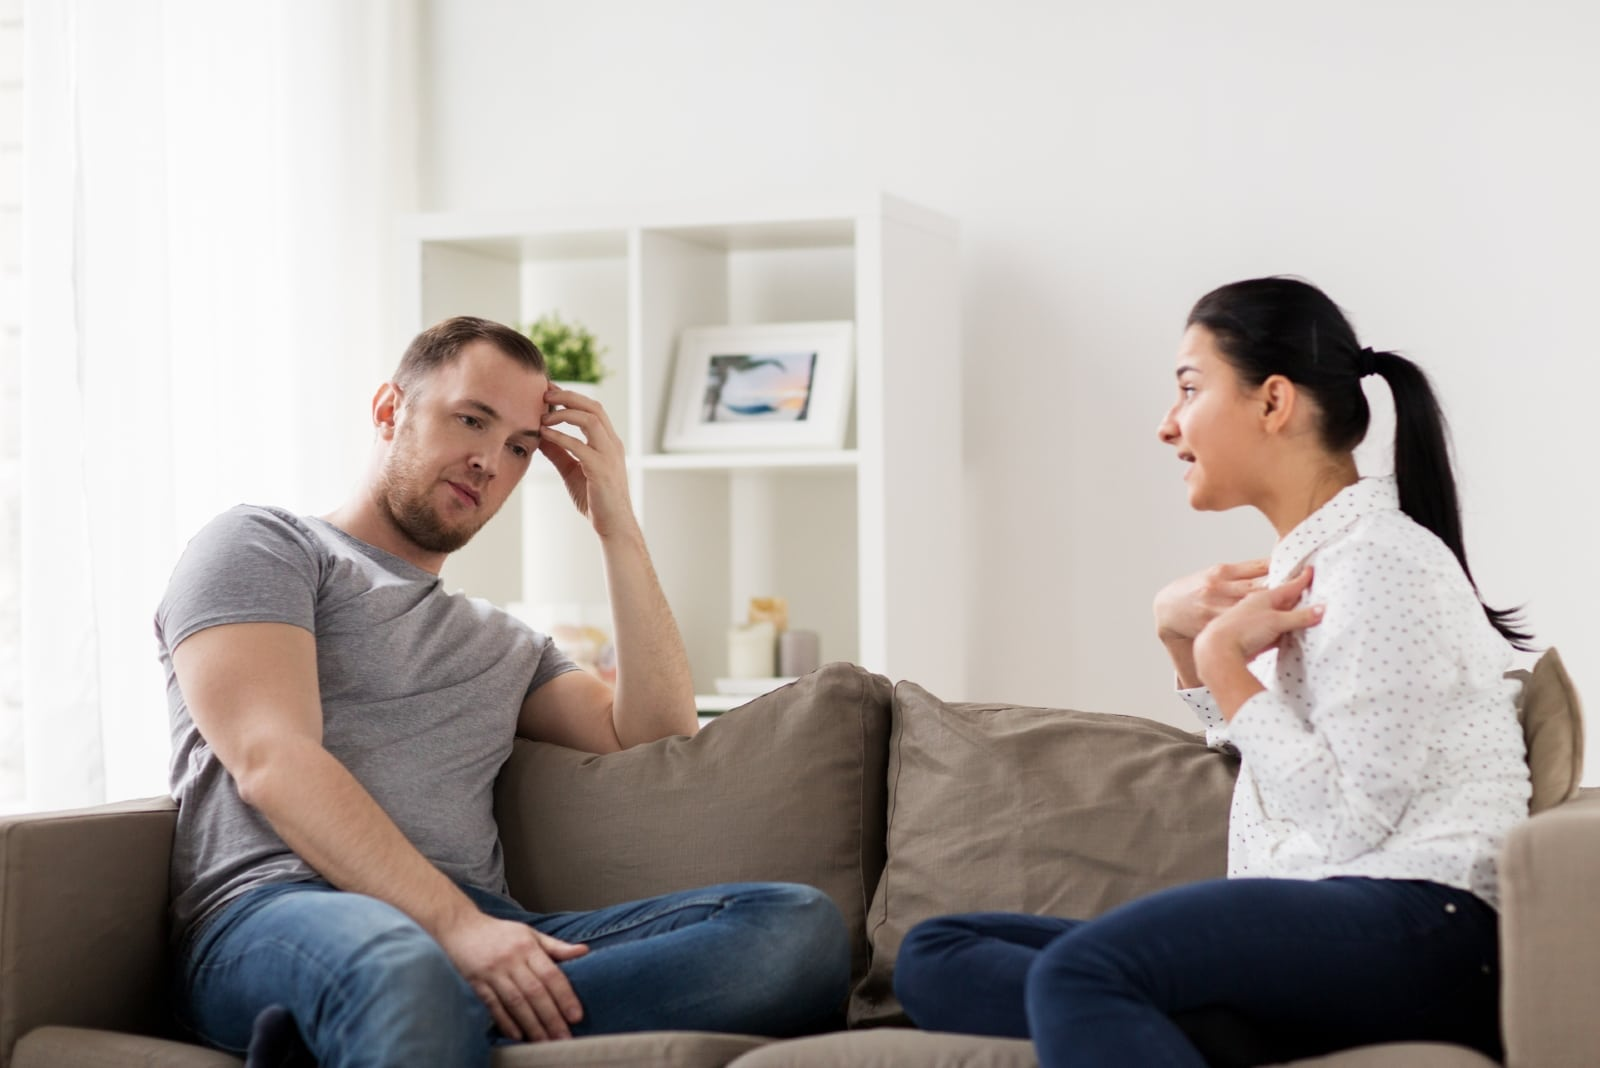 angry woman talking to man while sitting on sofa